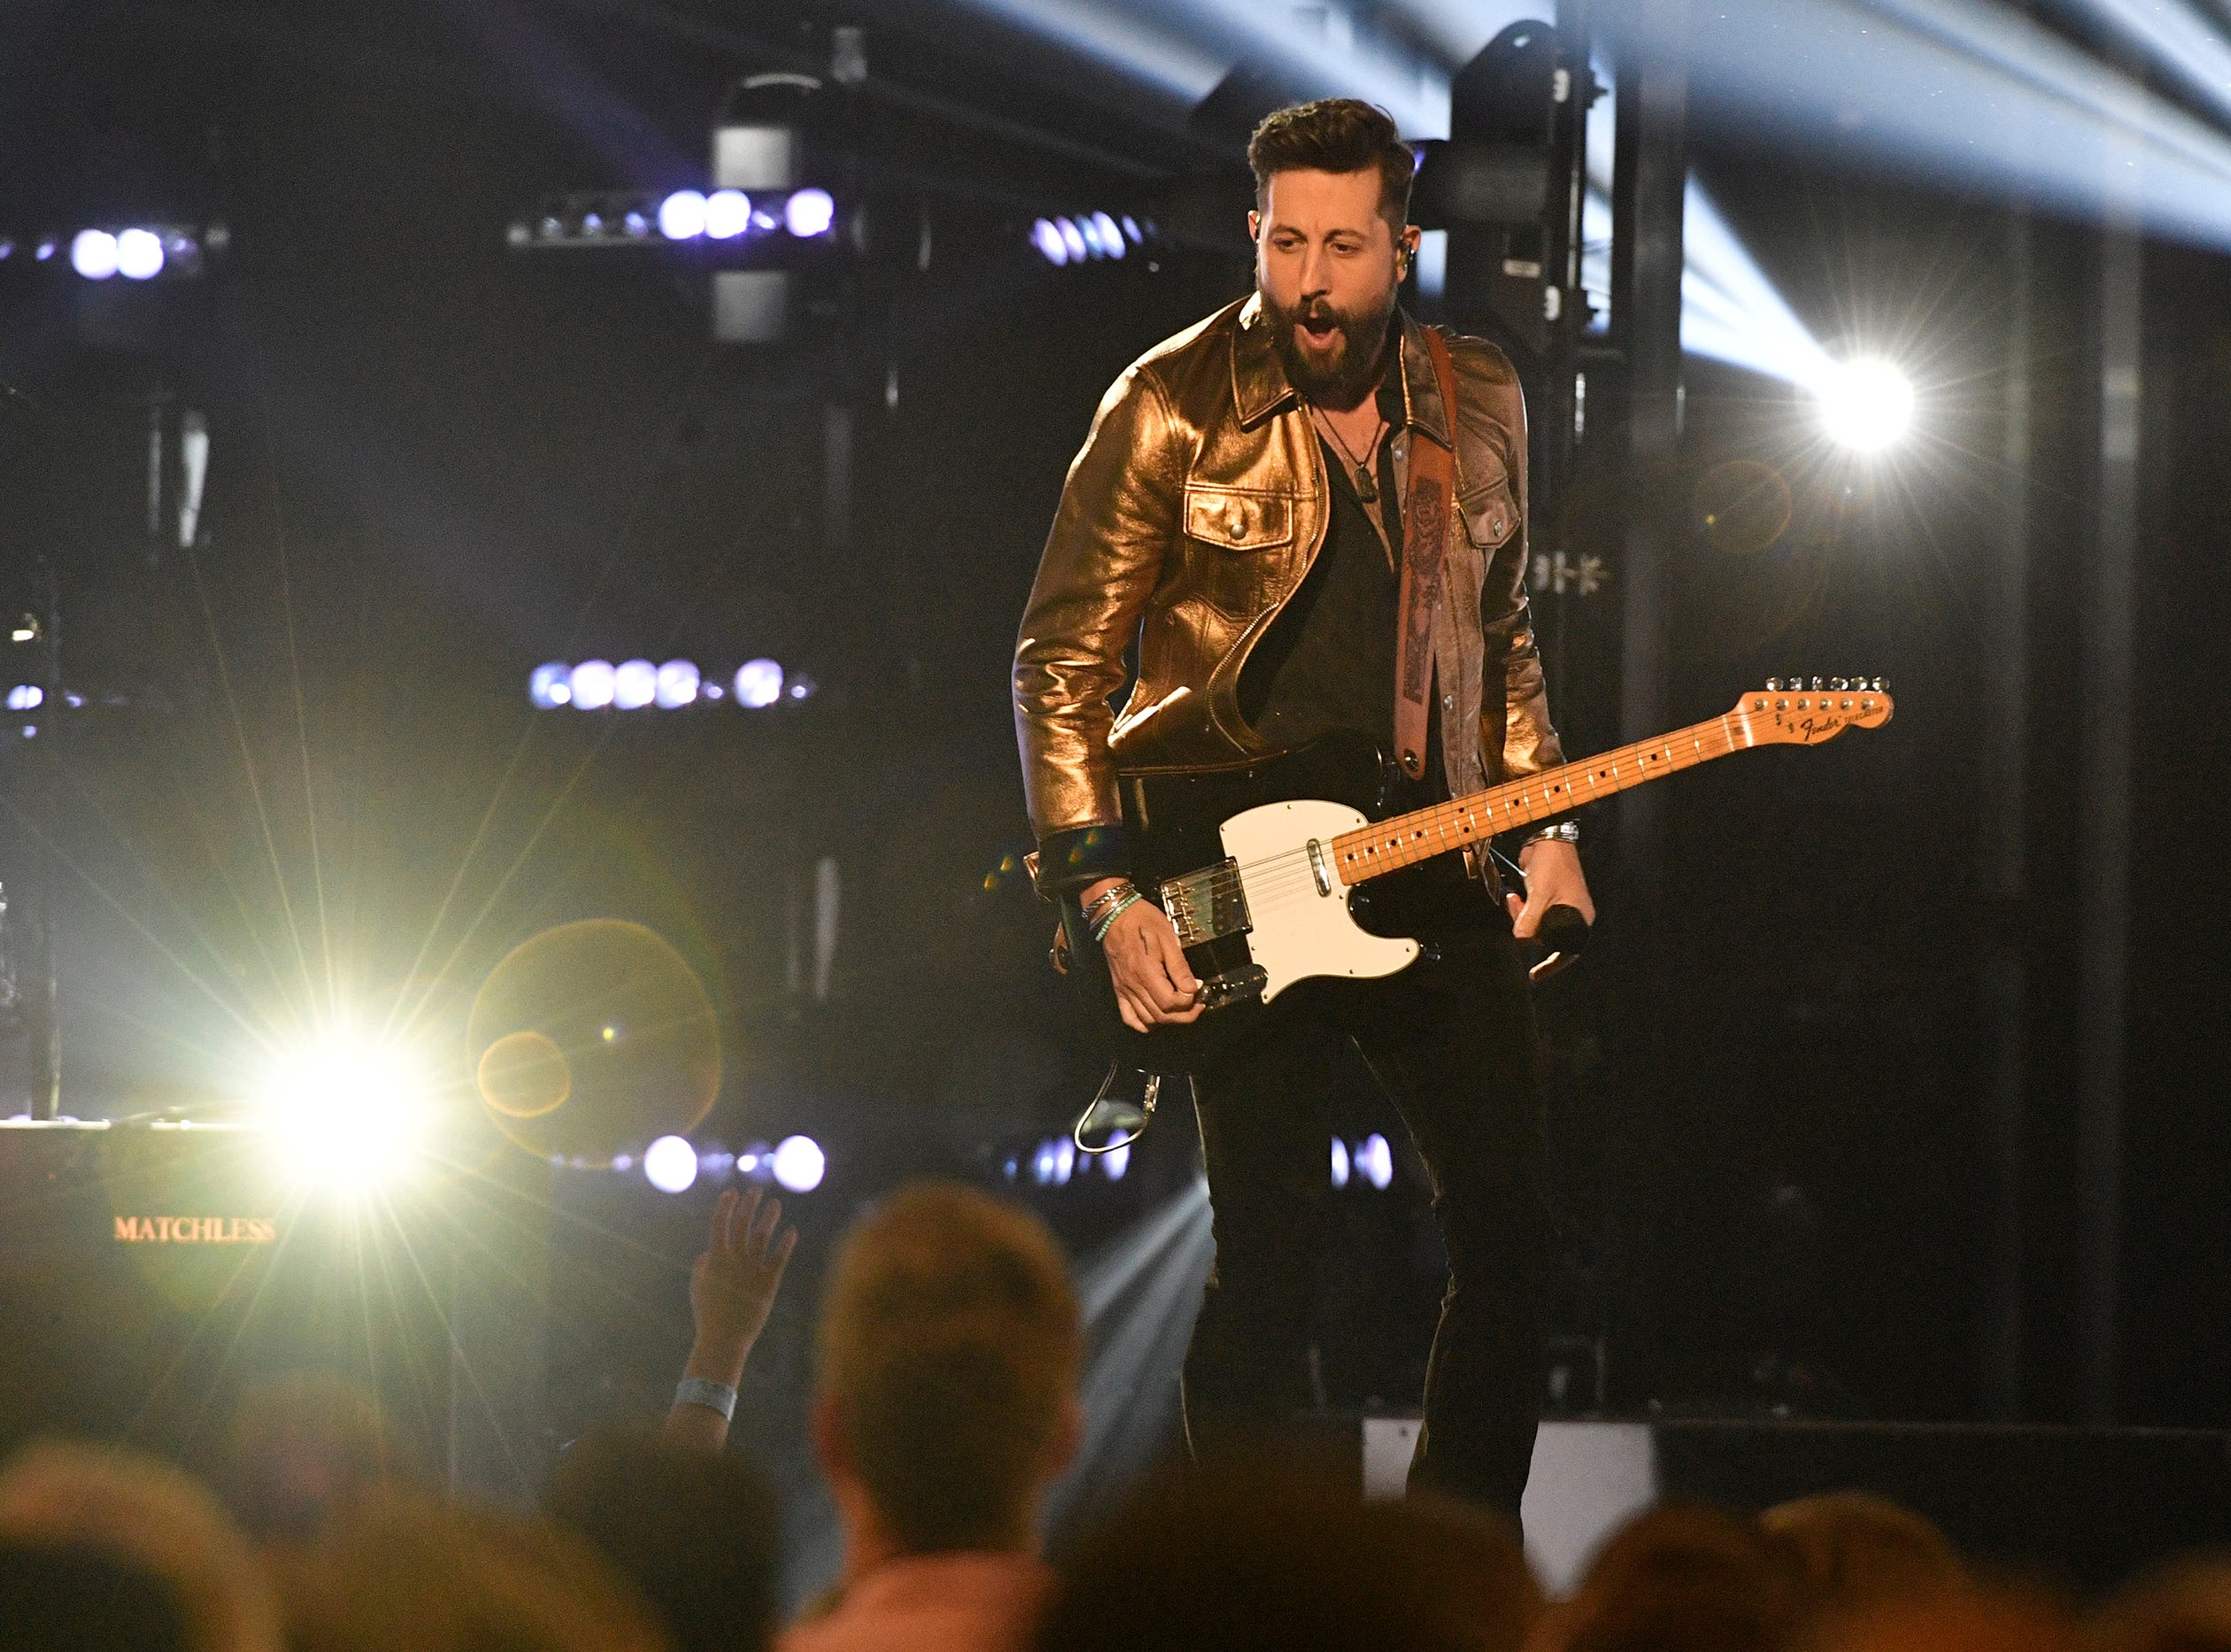 Matthew Ramsey of Old Dominion performs during the 54TH Academy of Country Music Awards Sunday, April 7, 2019, in Las Vegas, Nev.